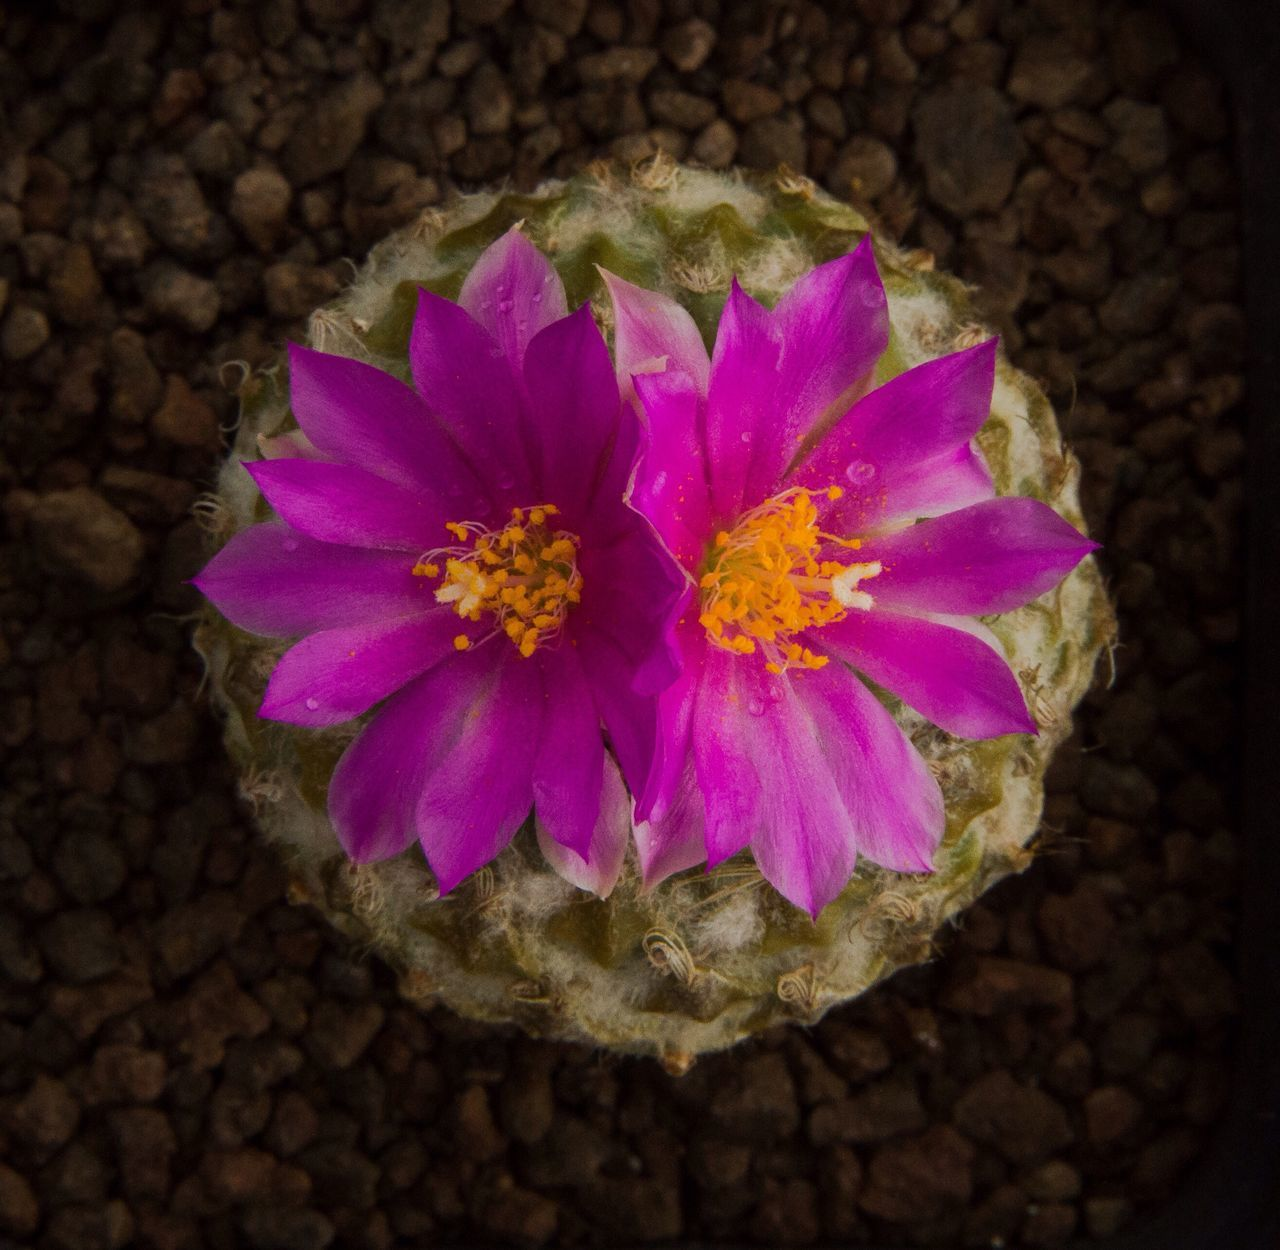 Encephalocarpus strobiliformis Flower Petal Flower Head Fragility No People Beauty In Nature Nature Close-up Freshness Blooming Day Outdoors Plant Cactus Cactus Flower Cactuslover Encephalocarpus